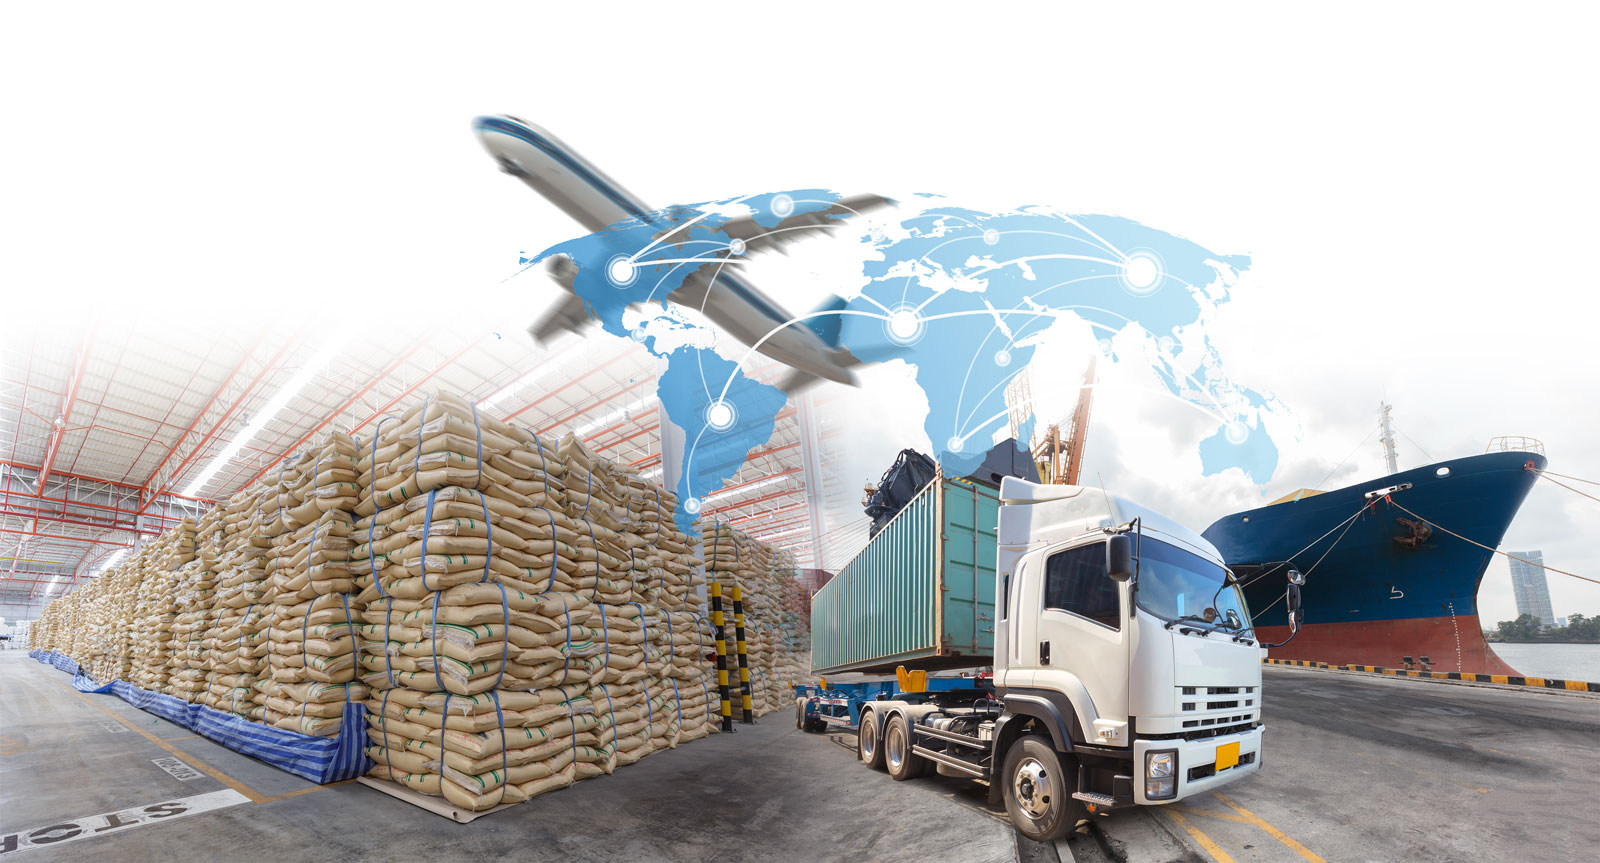 industrial cargo for import export